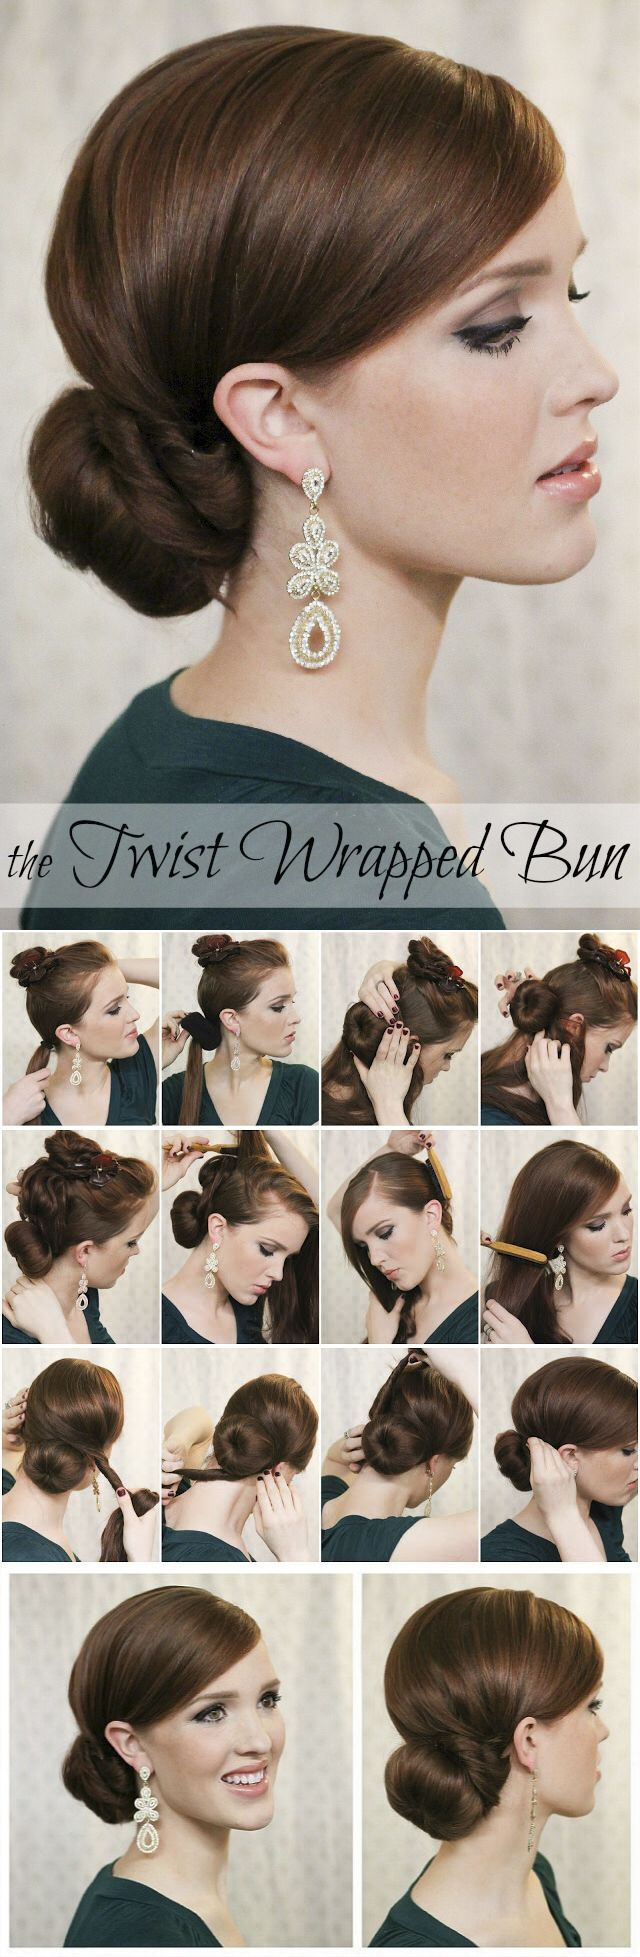 Hairstyles App Fair 162 Best Style Me Images On Pinterest  Cute Hairstyles Hairstyle